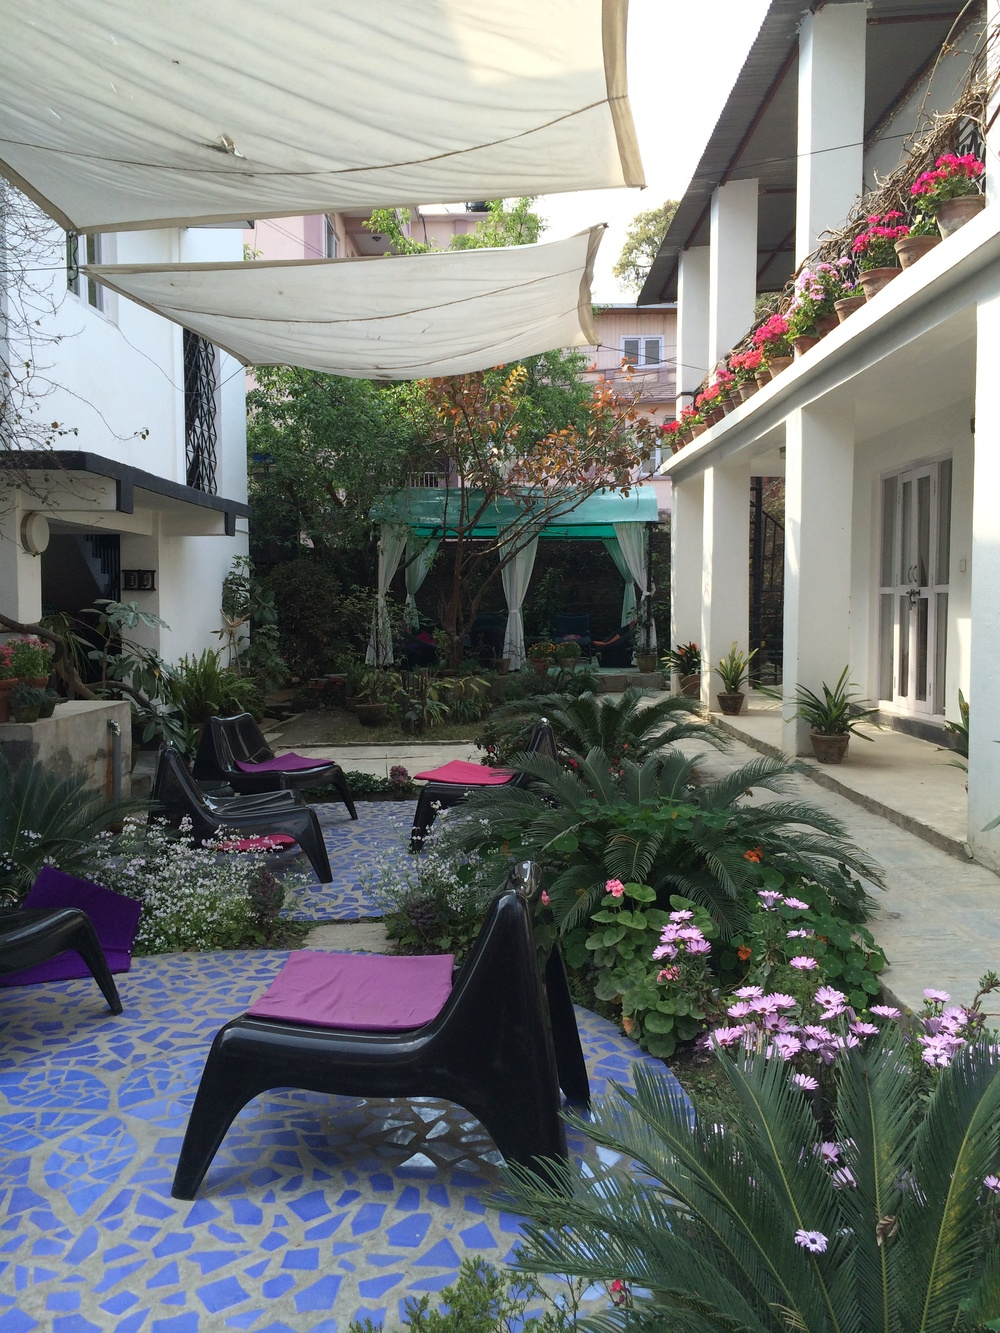 Debra travels to Nepal to work with the weavers and stays at the lovely Ting Tea House. Their garden is a quiet oasis amidst the chaos that is Kathmandu.